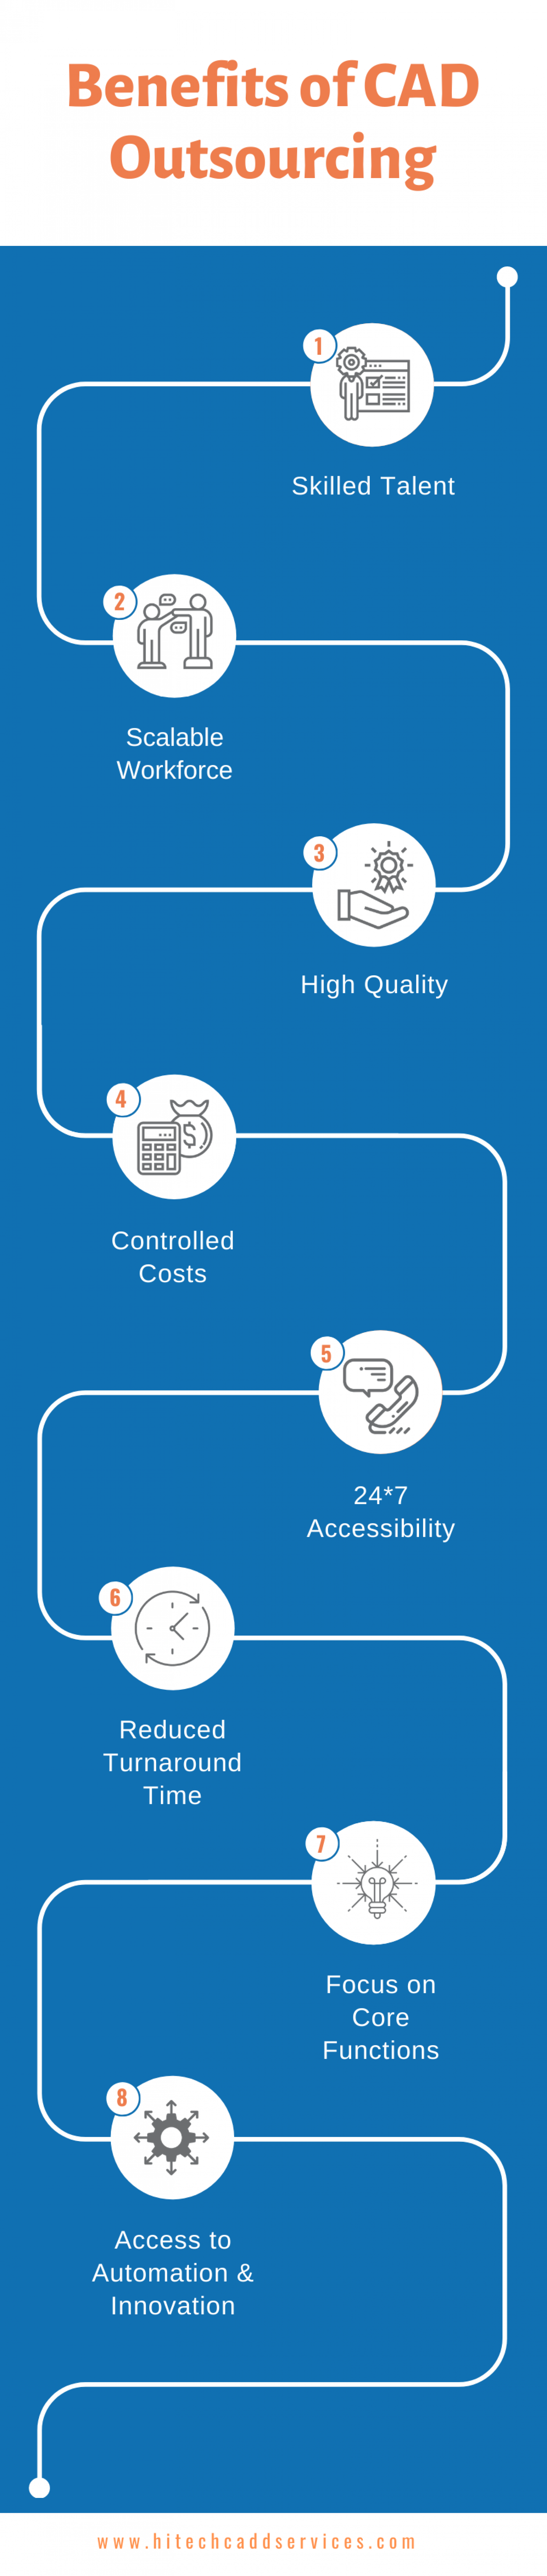 Benefits of CAD Outsourcing Infographic